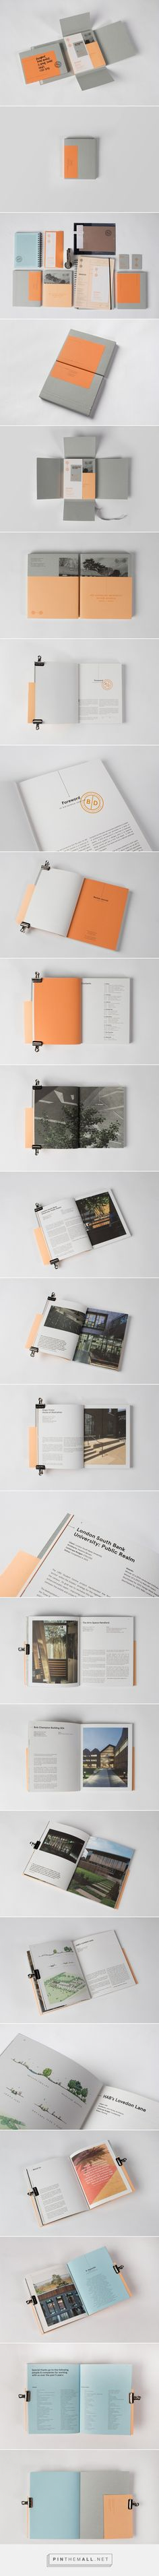 B|D Landscape Architects: Review Journal on Behance - created via https://pinthemall.net